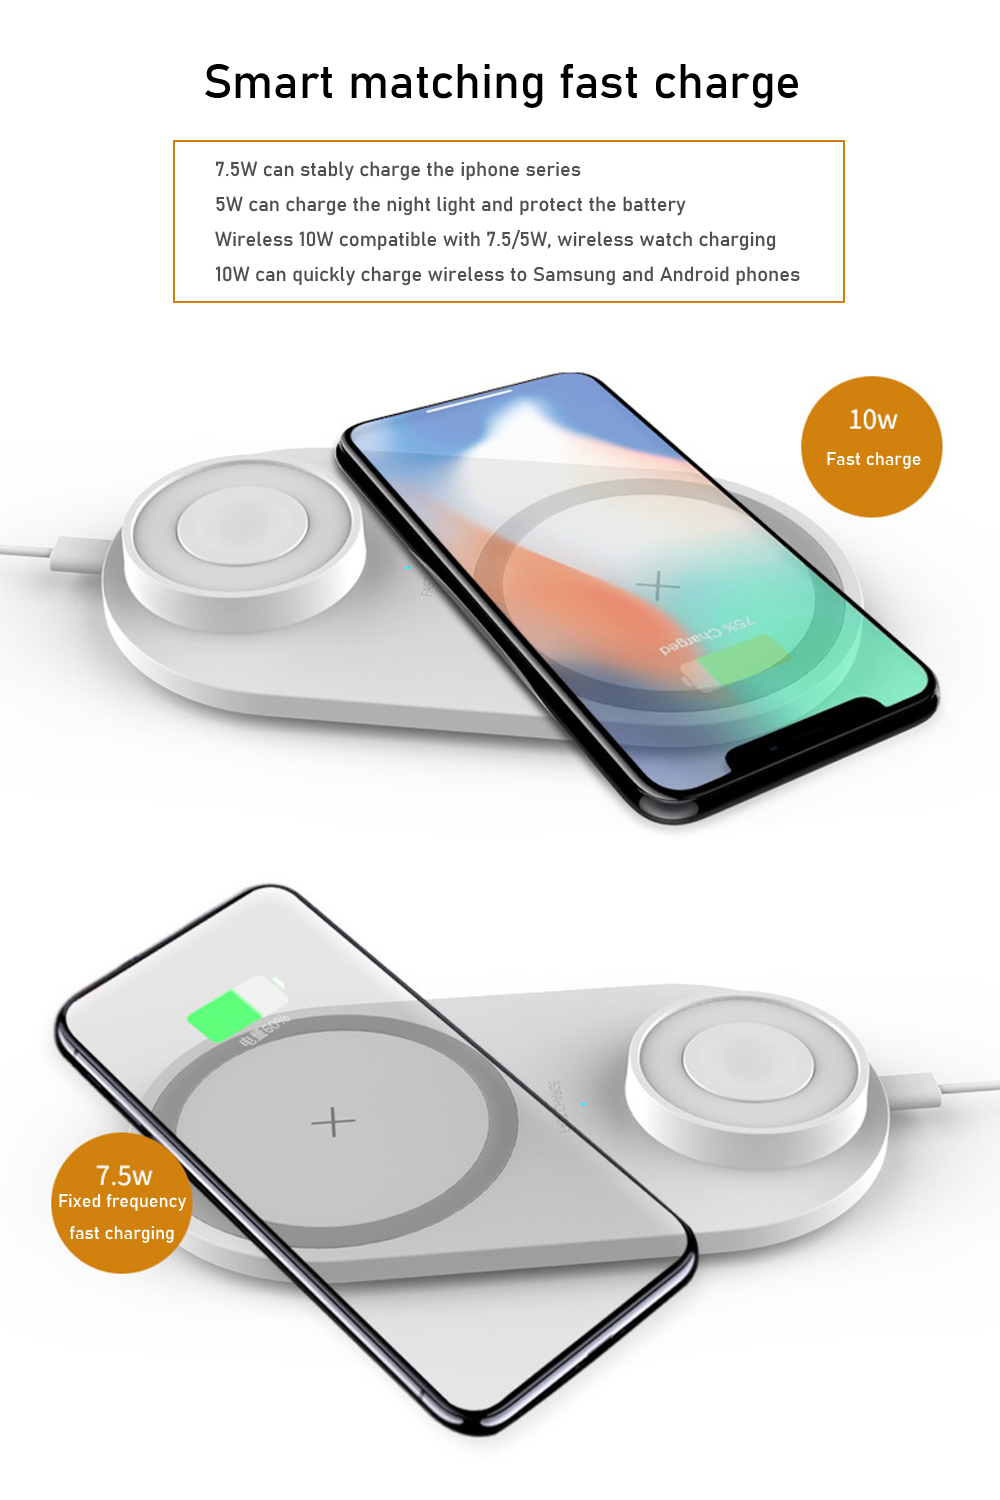 Bakeey 3 In 1 10W 7.5W 5W Night Light Indication Lamp Fast Charging Wireless Charger For iPhone XS 11 Pro Huawei P30 Pro Watch 5 Headset 12